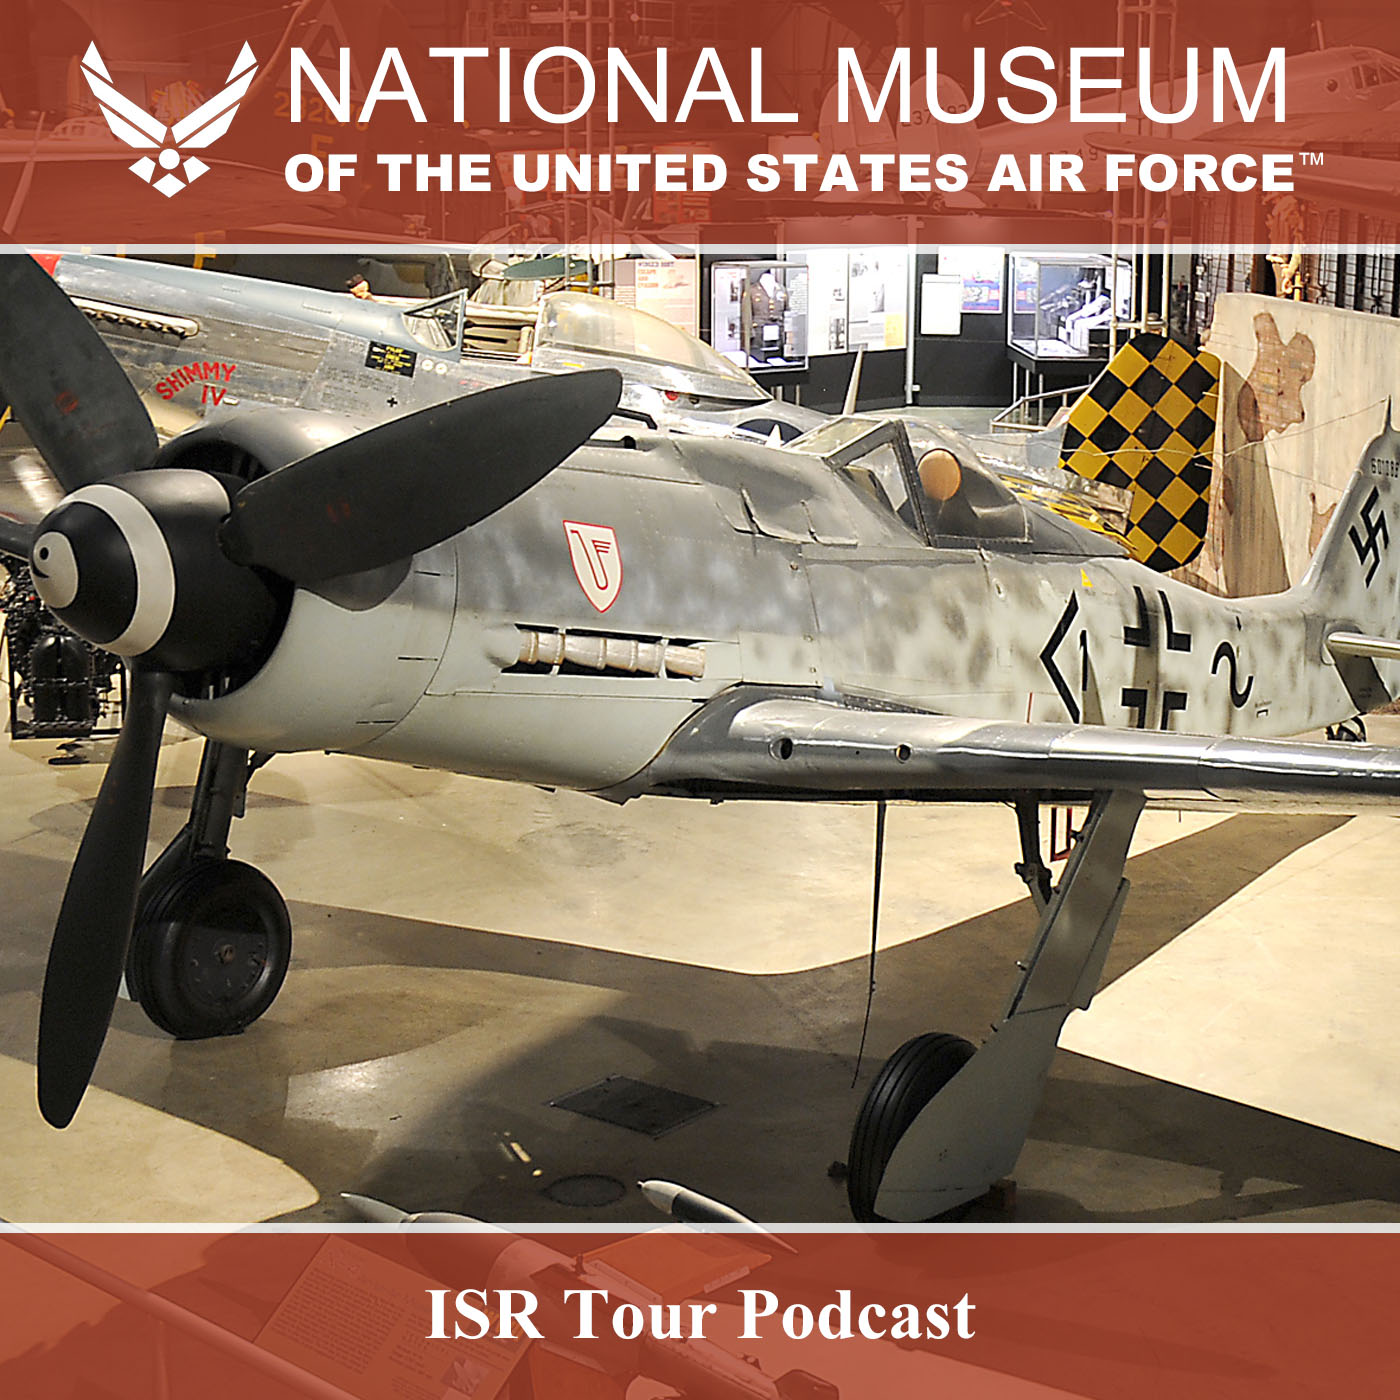 Subscribe to ISR Tour Podcast